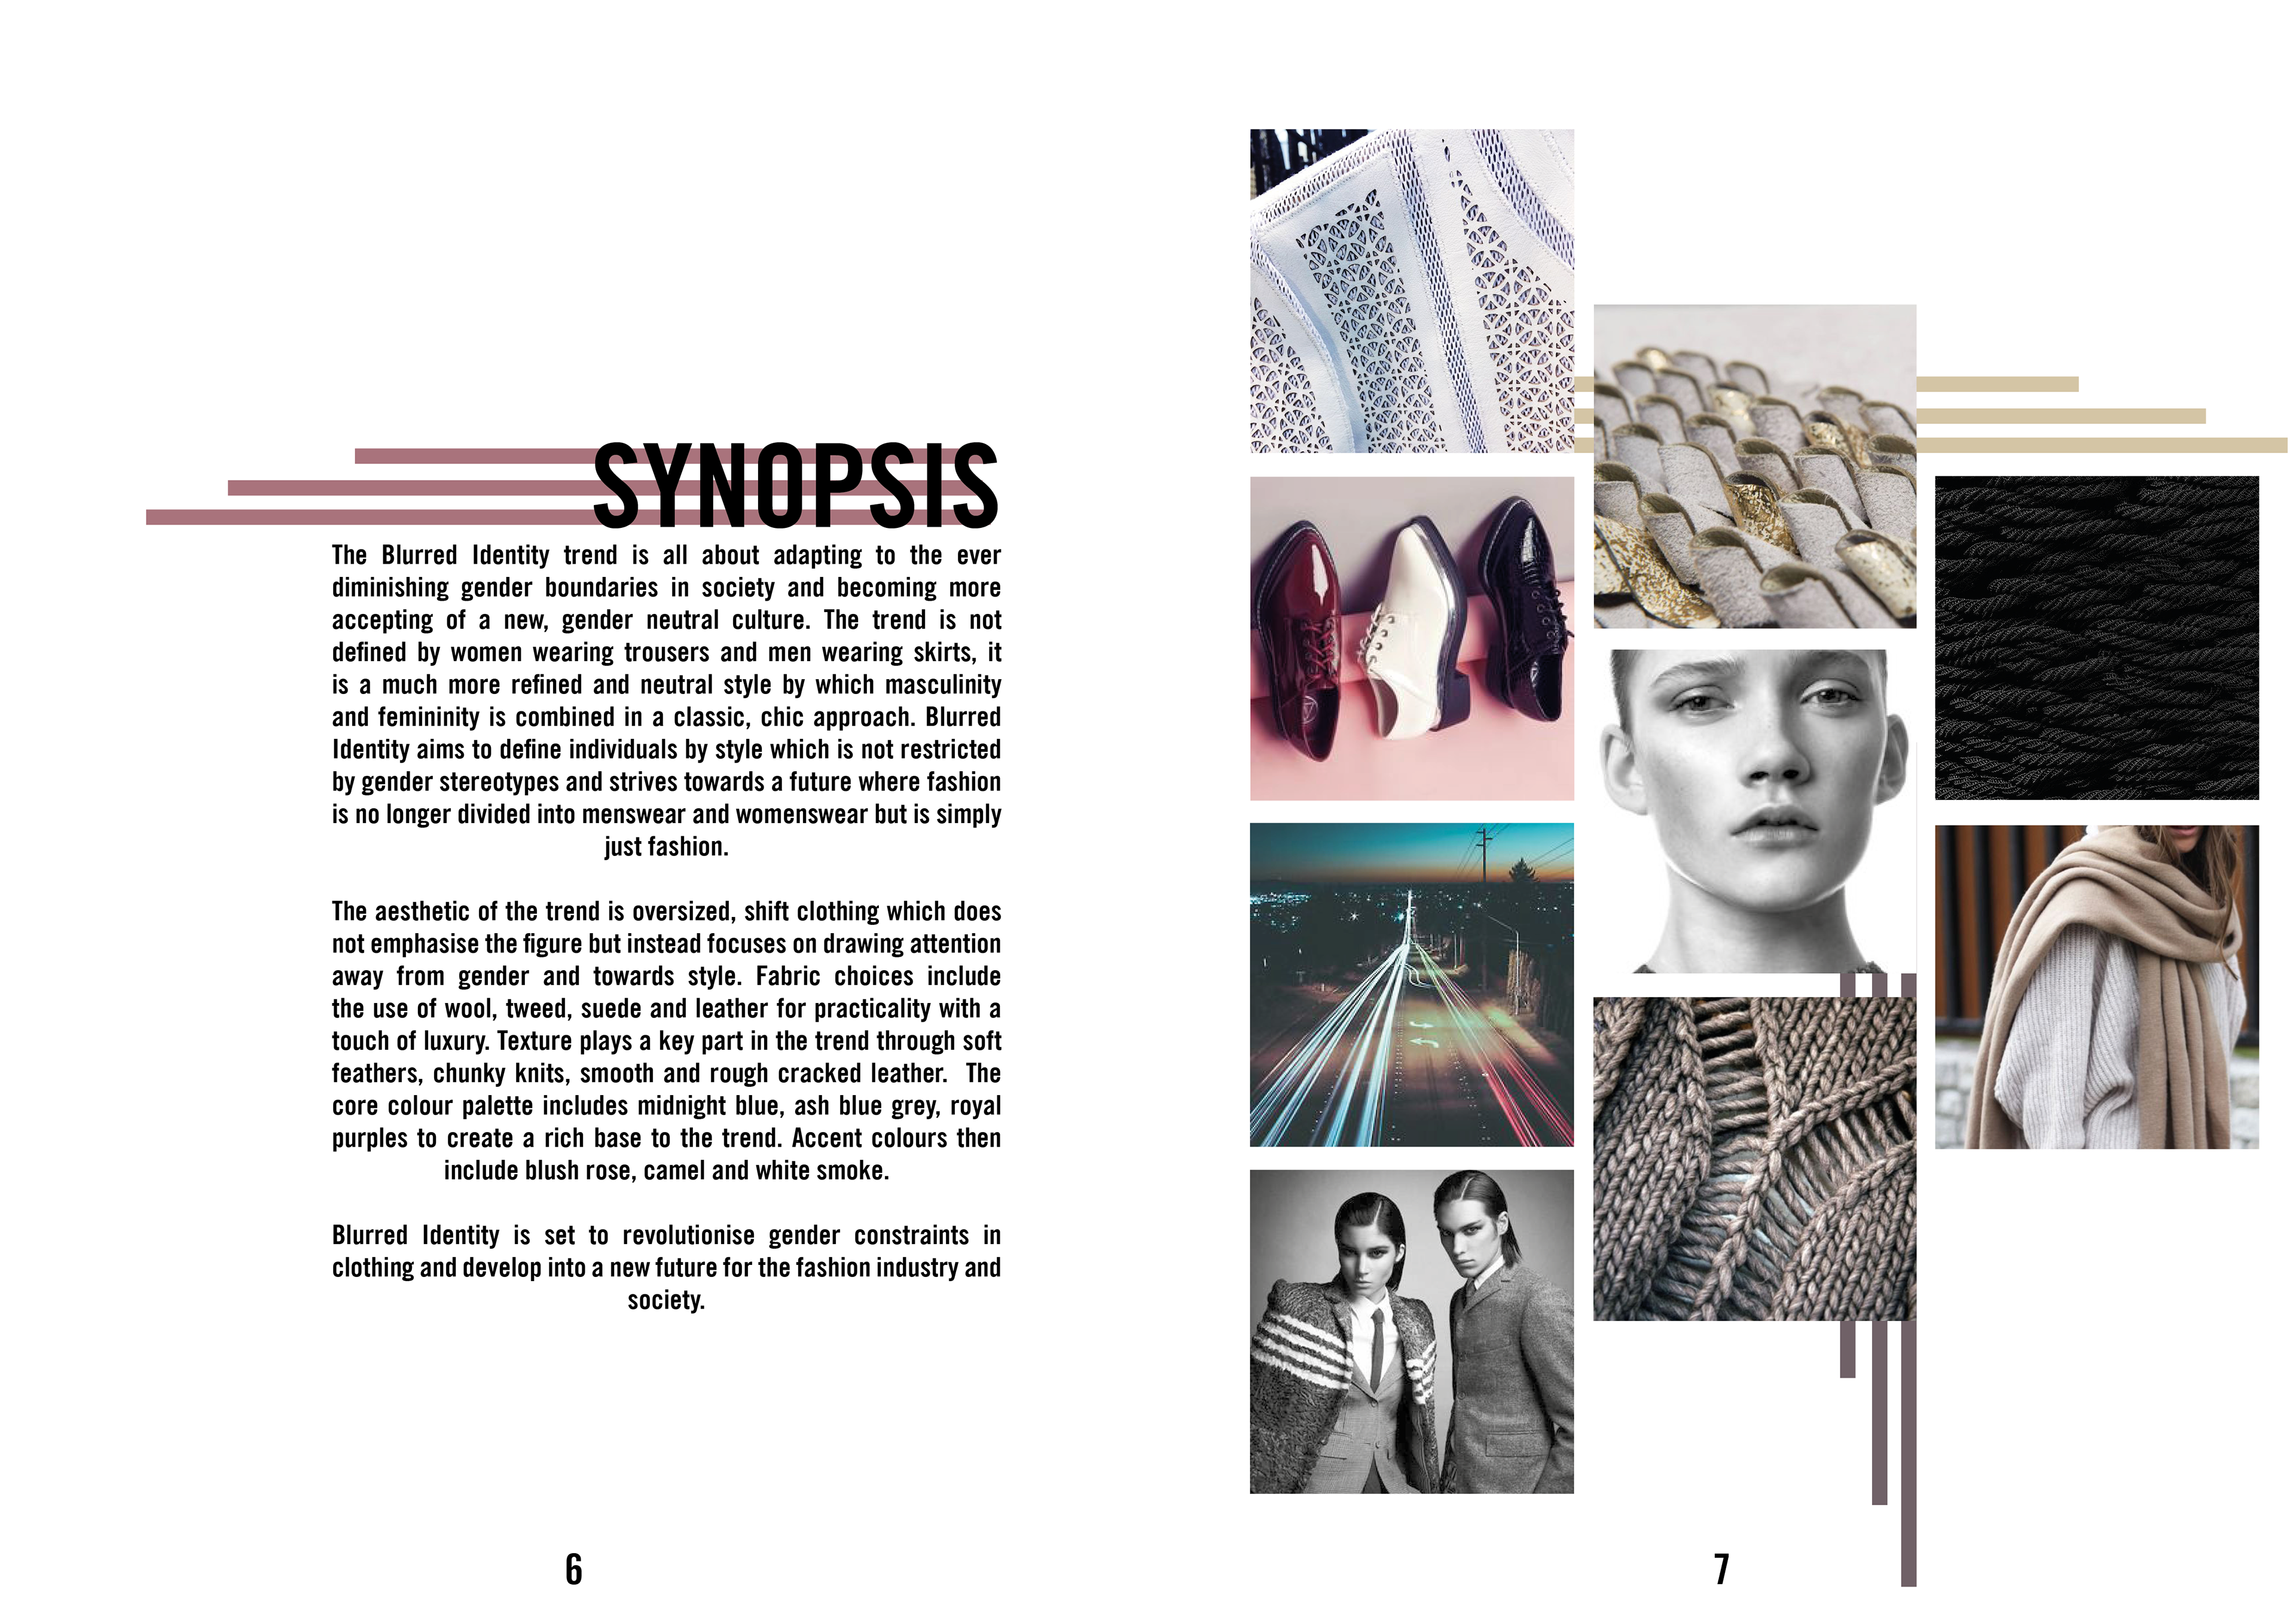 an analysis of fashion and society Fashion trends: analysis and forecasting covers a wide range of key topics, such as the impact of fashion consumption on the environment, economic development, and socio-cultural change, as well as the impact of social responsibility and the digital consumer on current fashion trends.